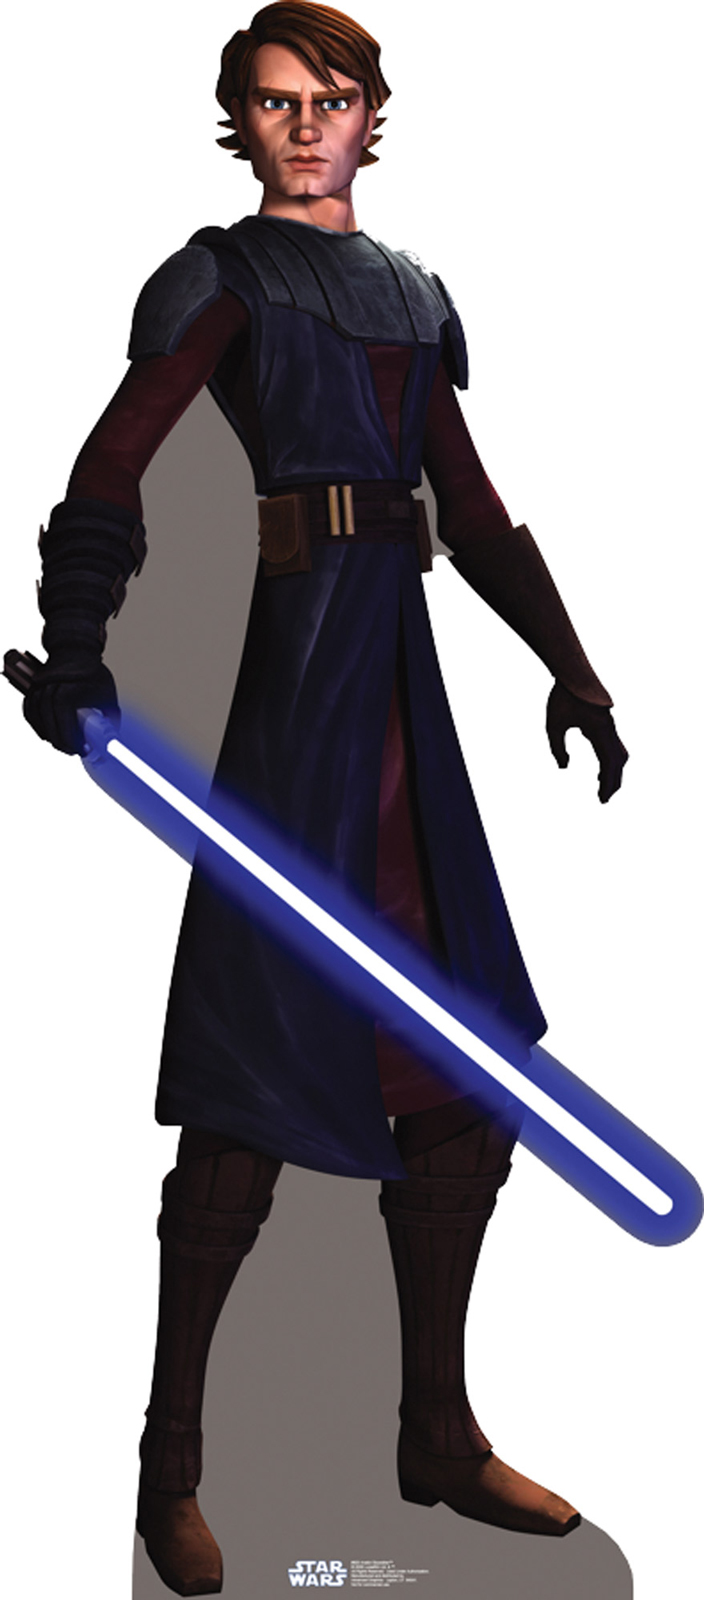 Star Wars The Clone Wars Anakin Skywalker Standup